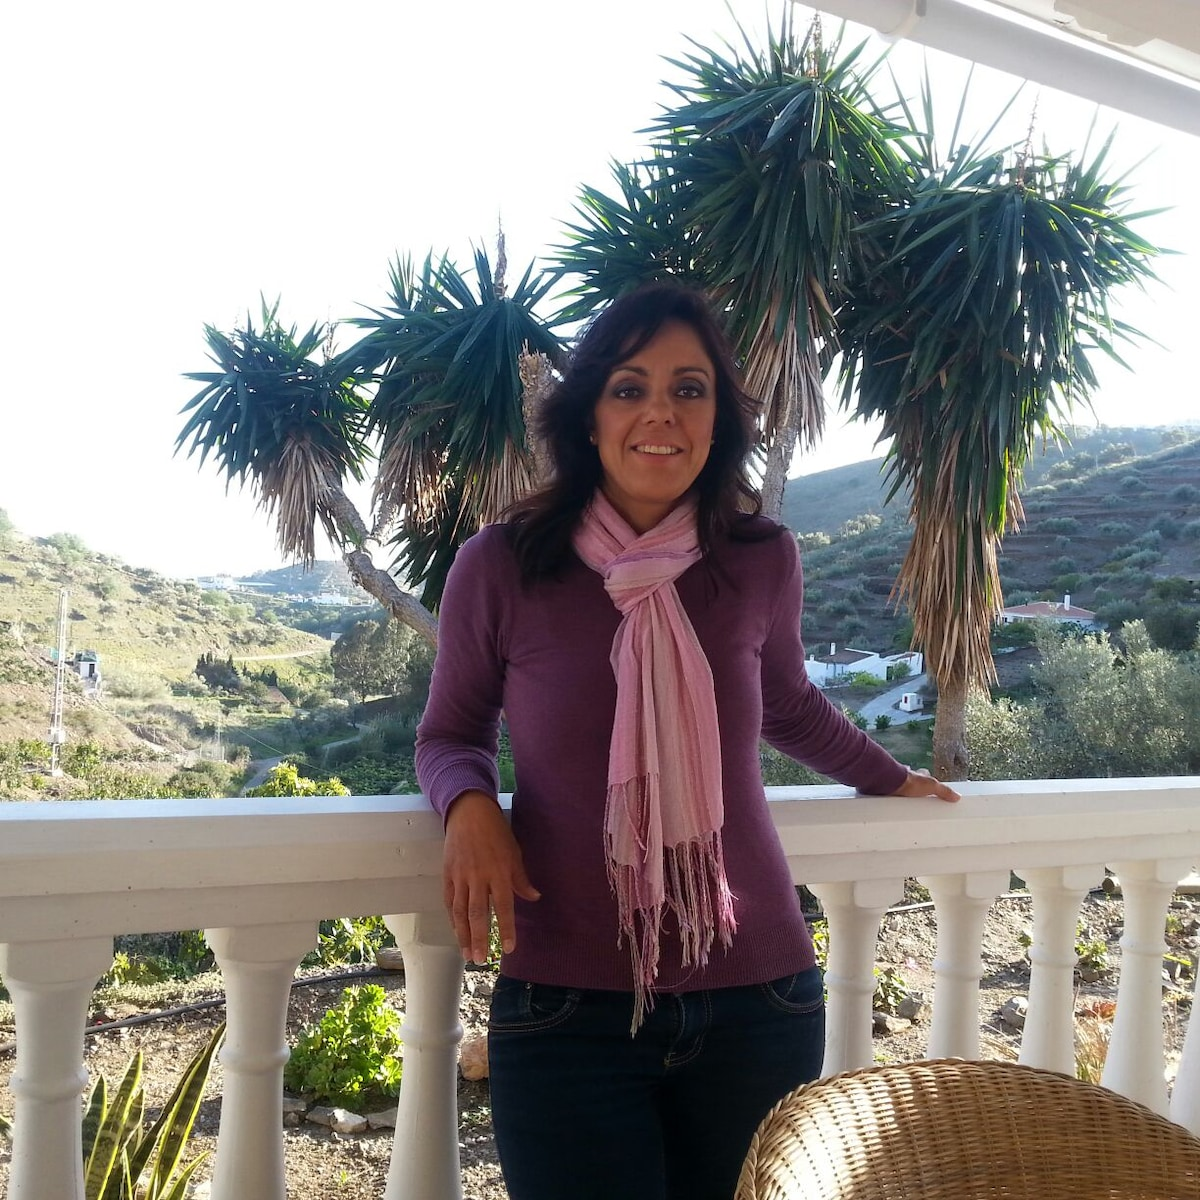 Esther from Torrox